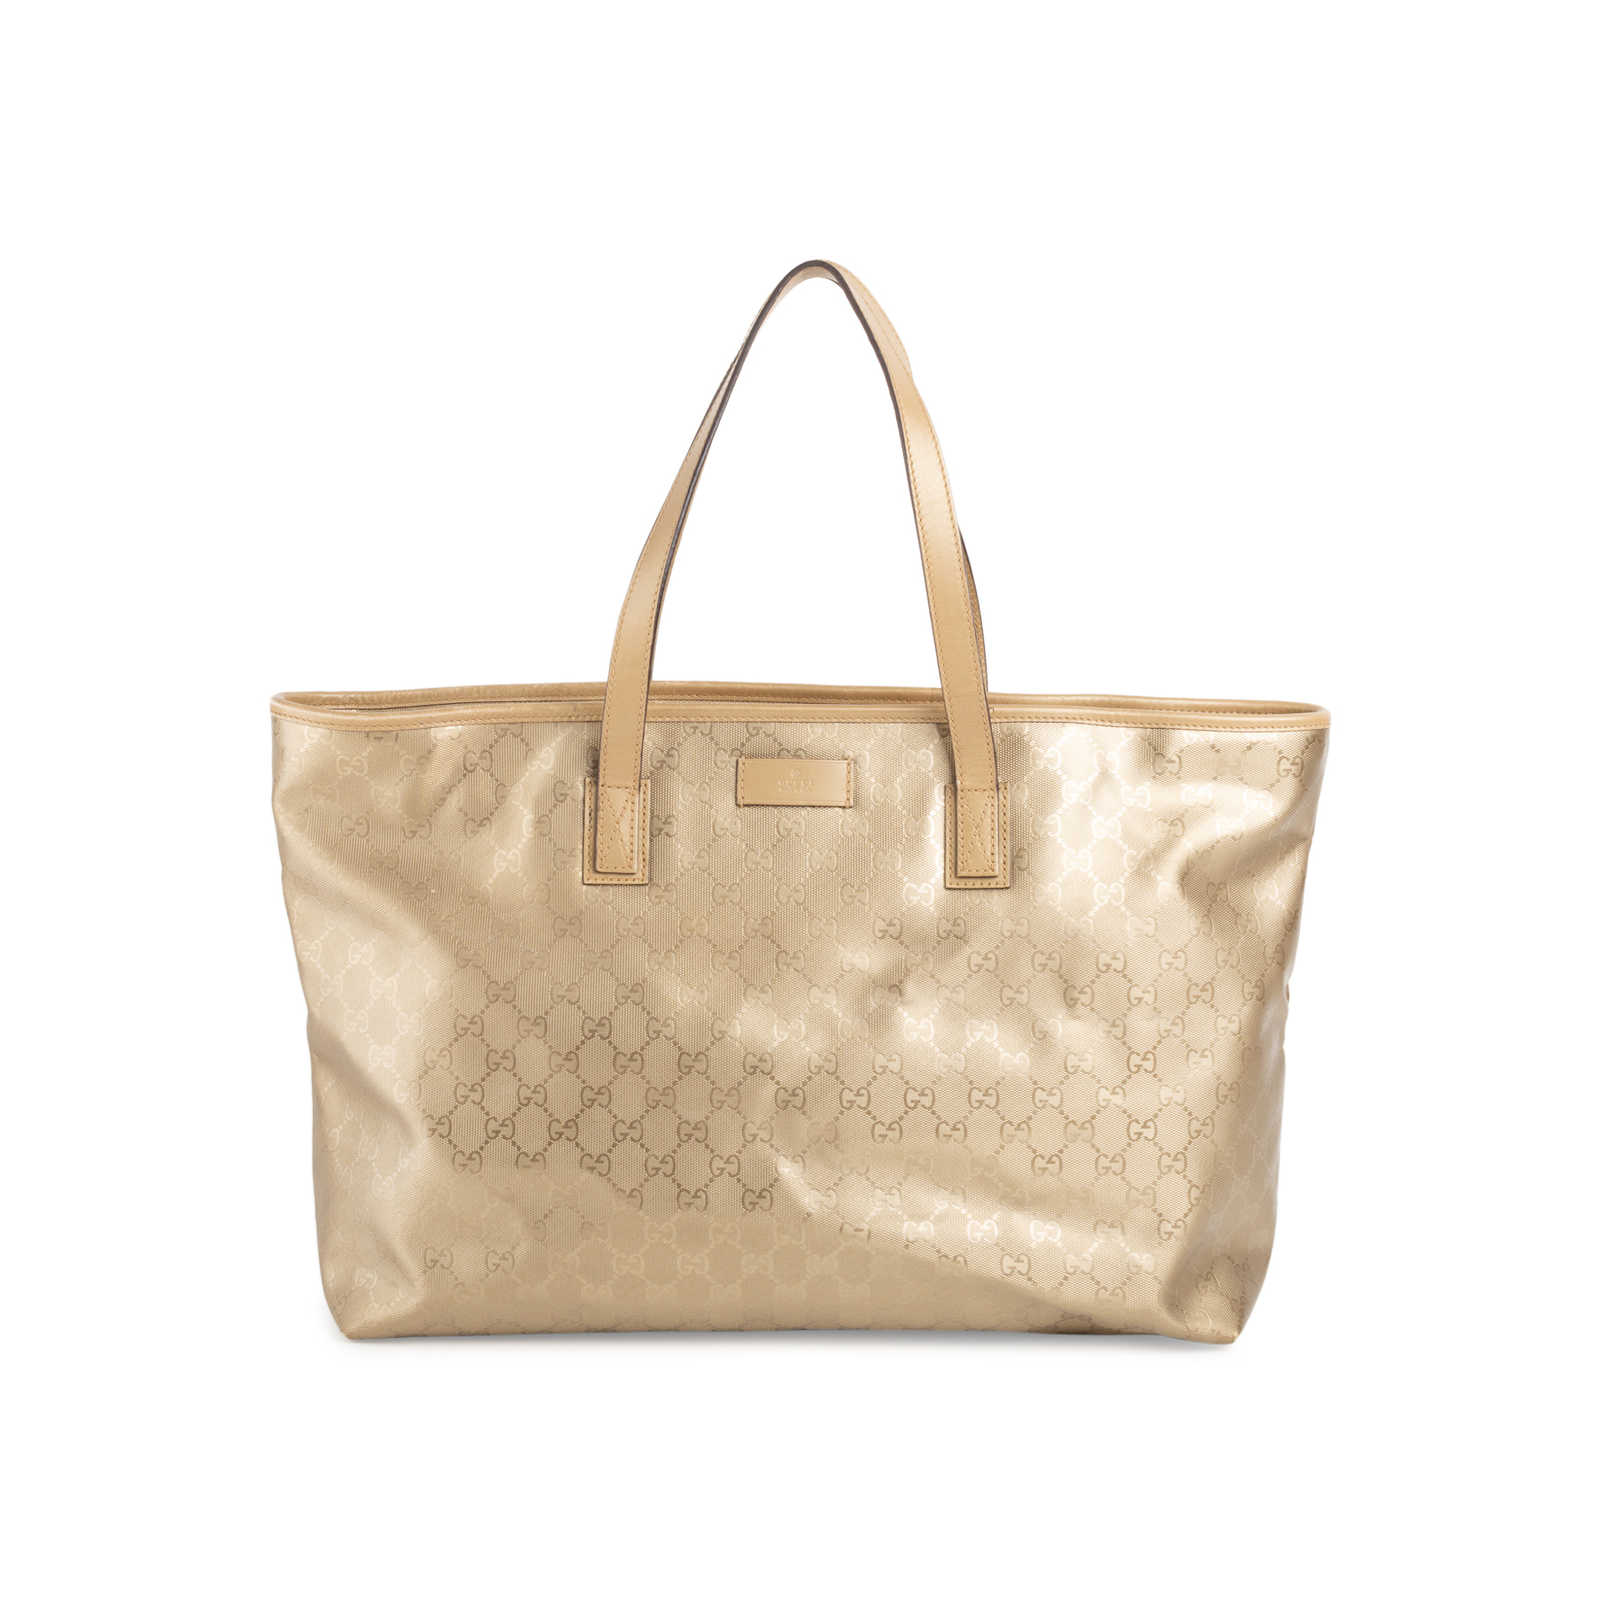 eaa95ec07e Tap to expand · Authentic Second Hand Gucci Imprime Tote Bag  (PSS-664-00003) - Thumbnail ...